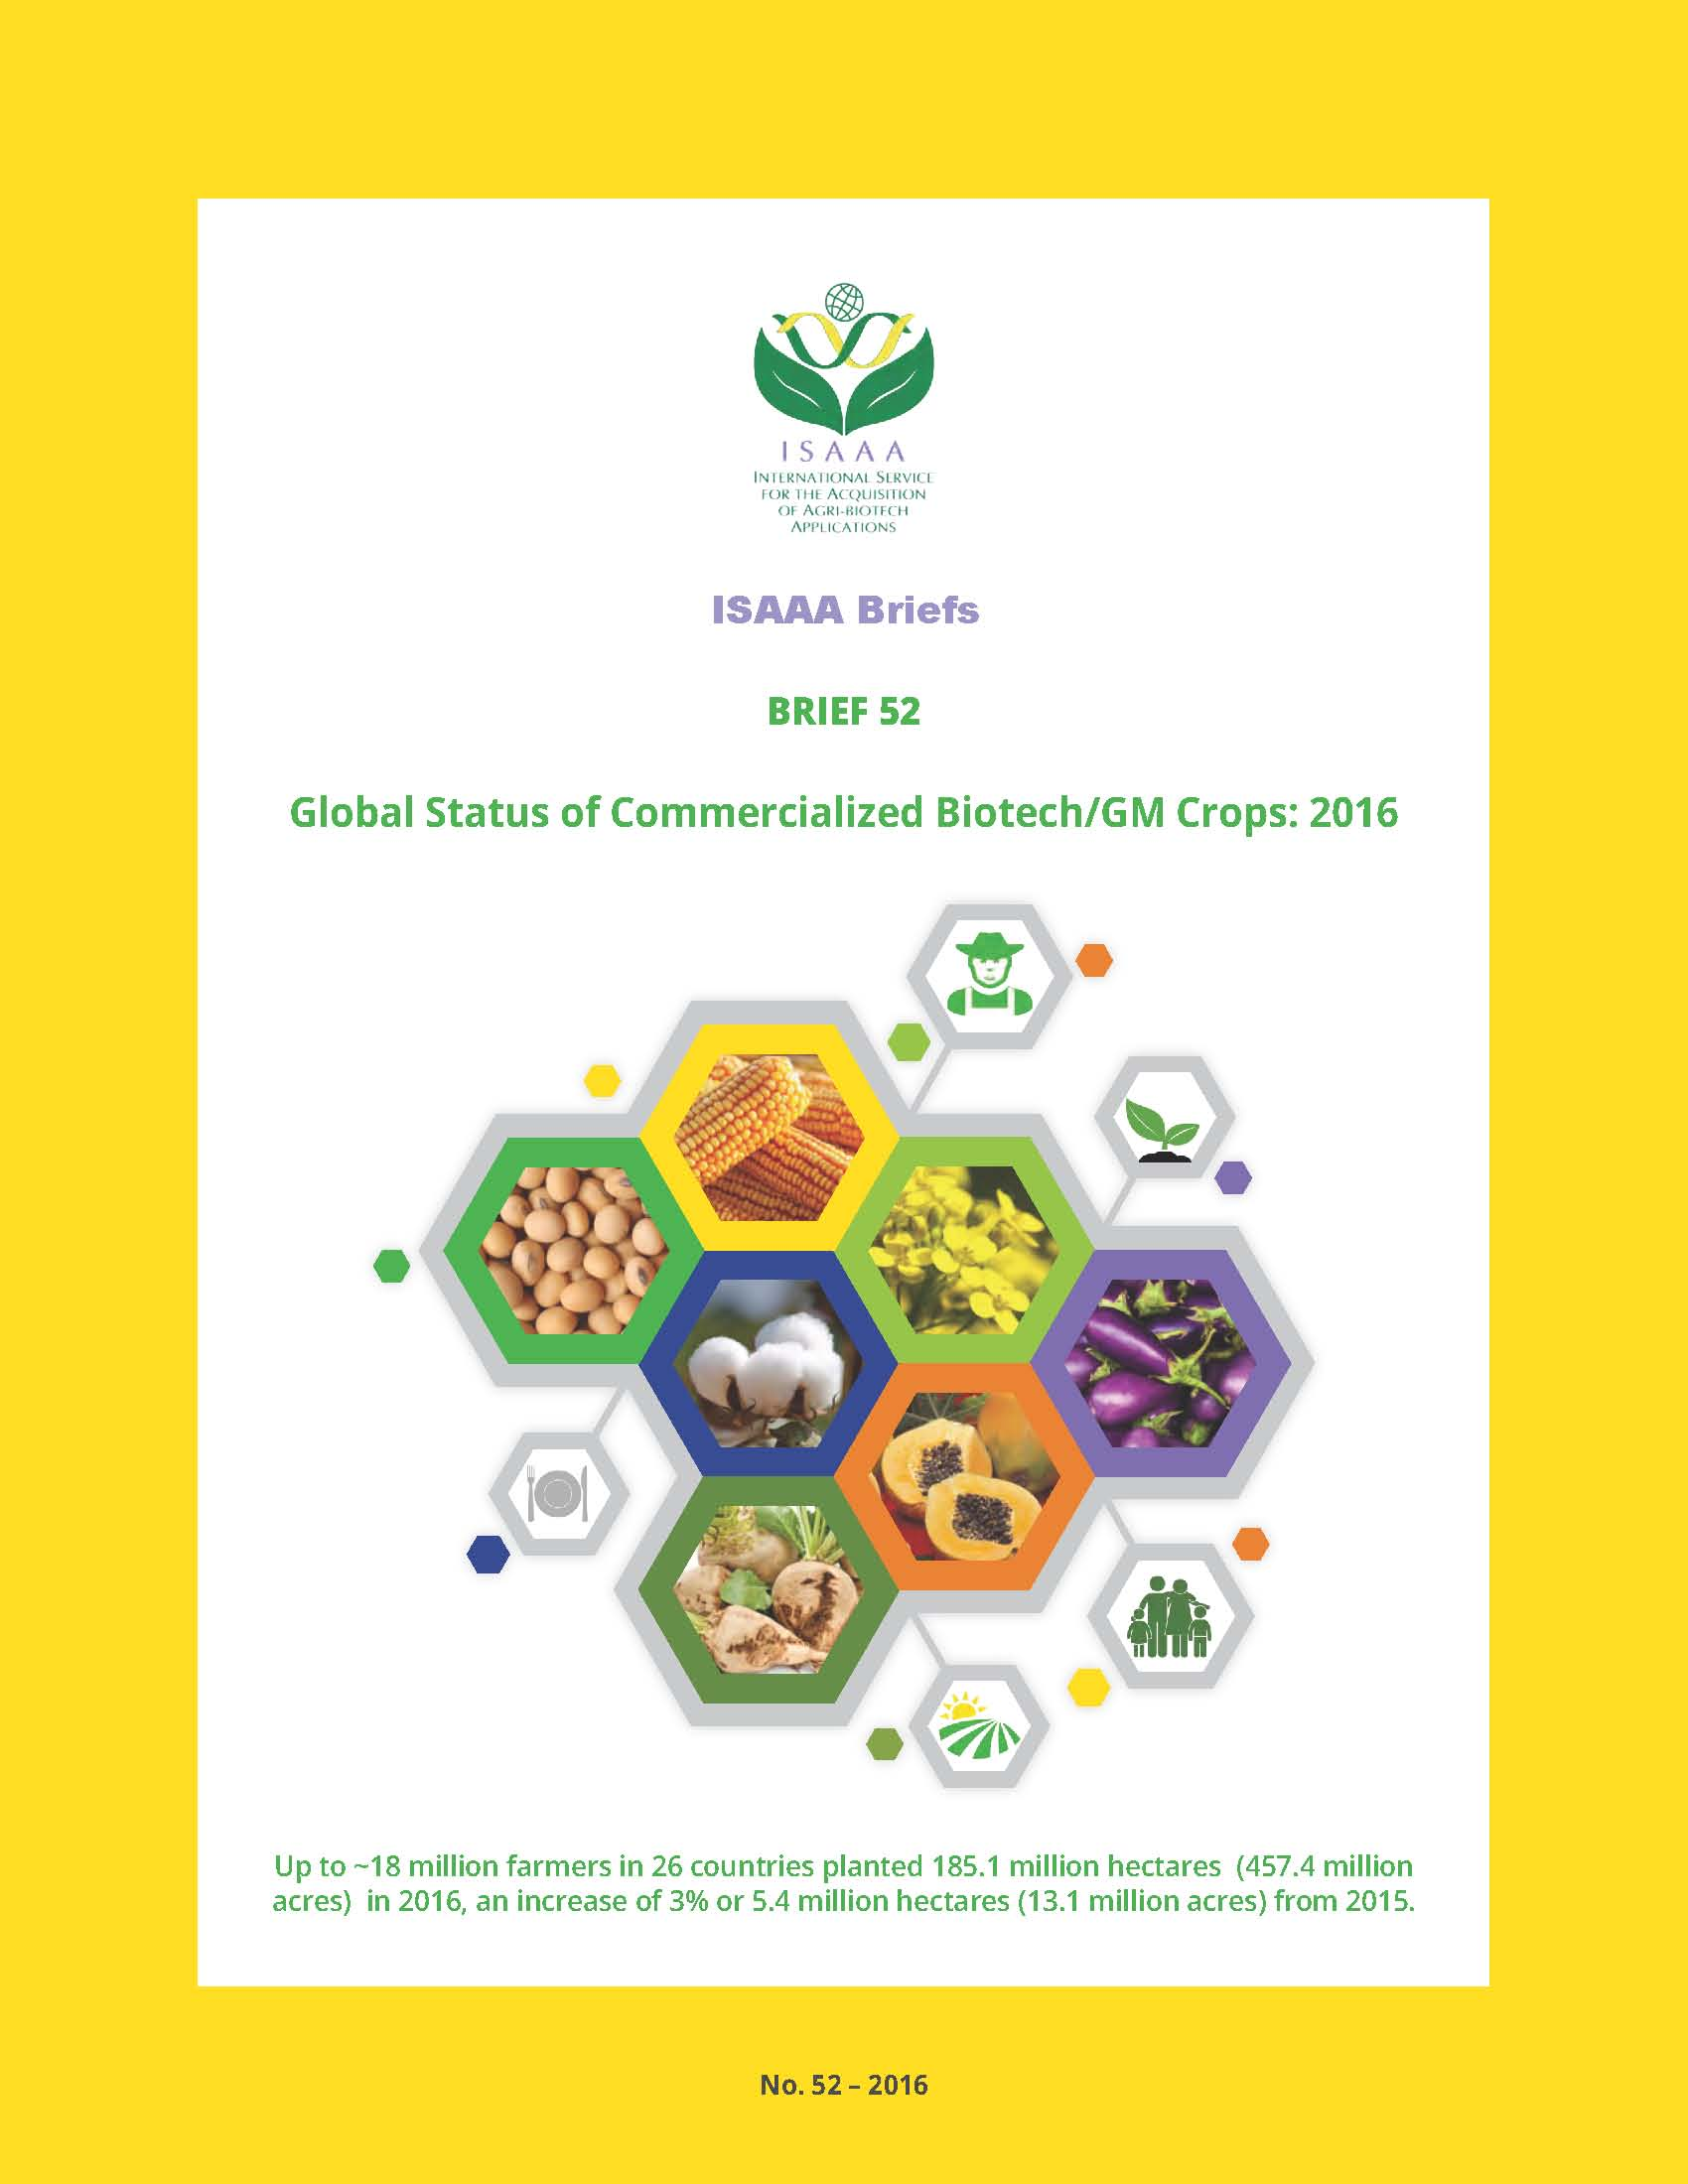 Global Status of Commercialized Biotech/GM Crops: 2016